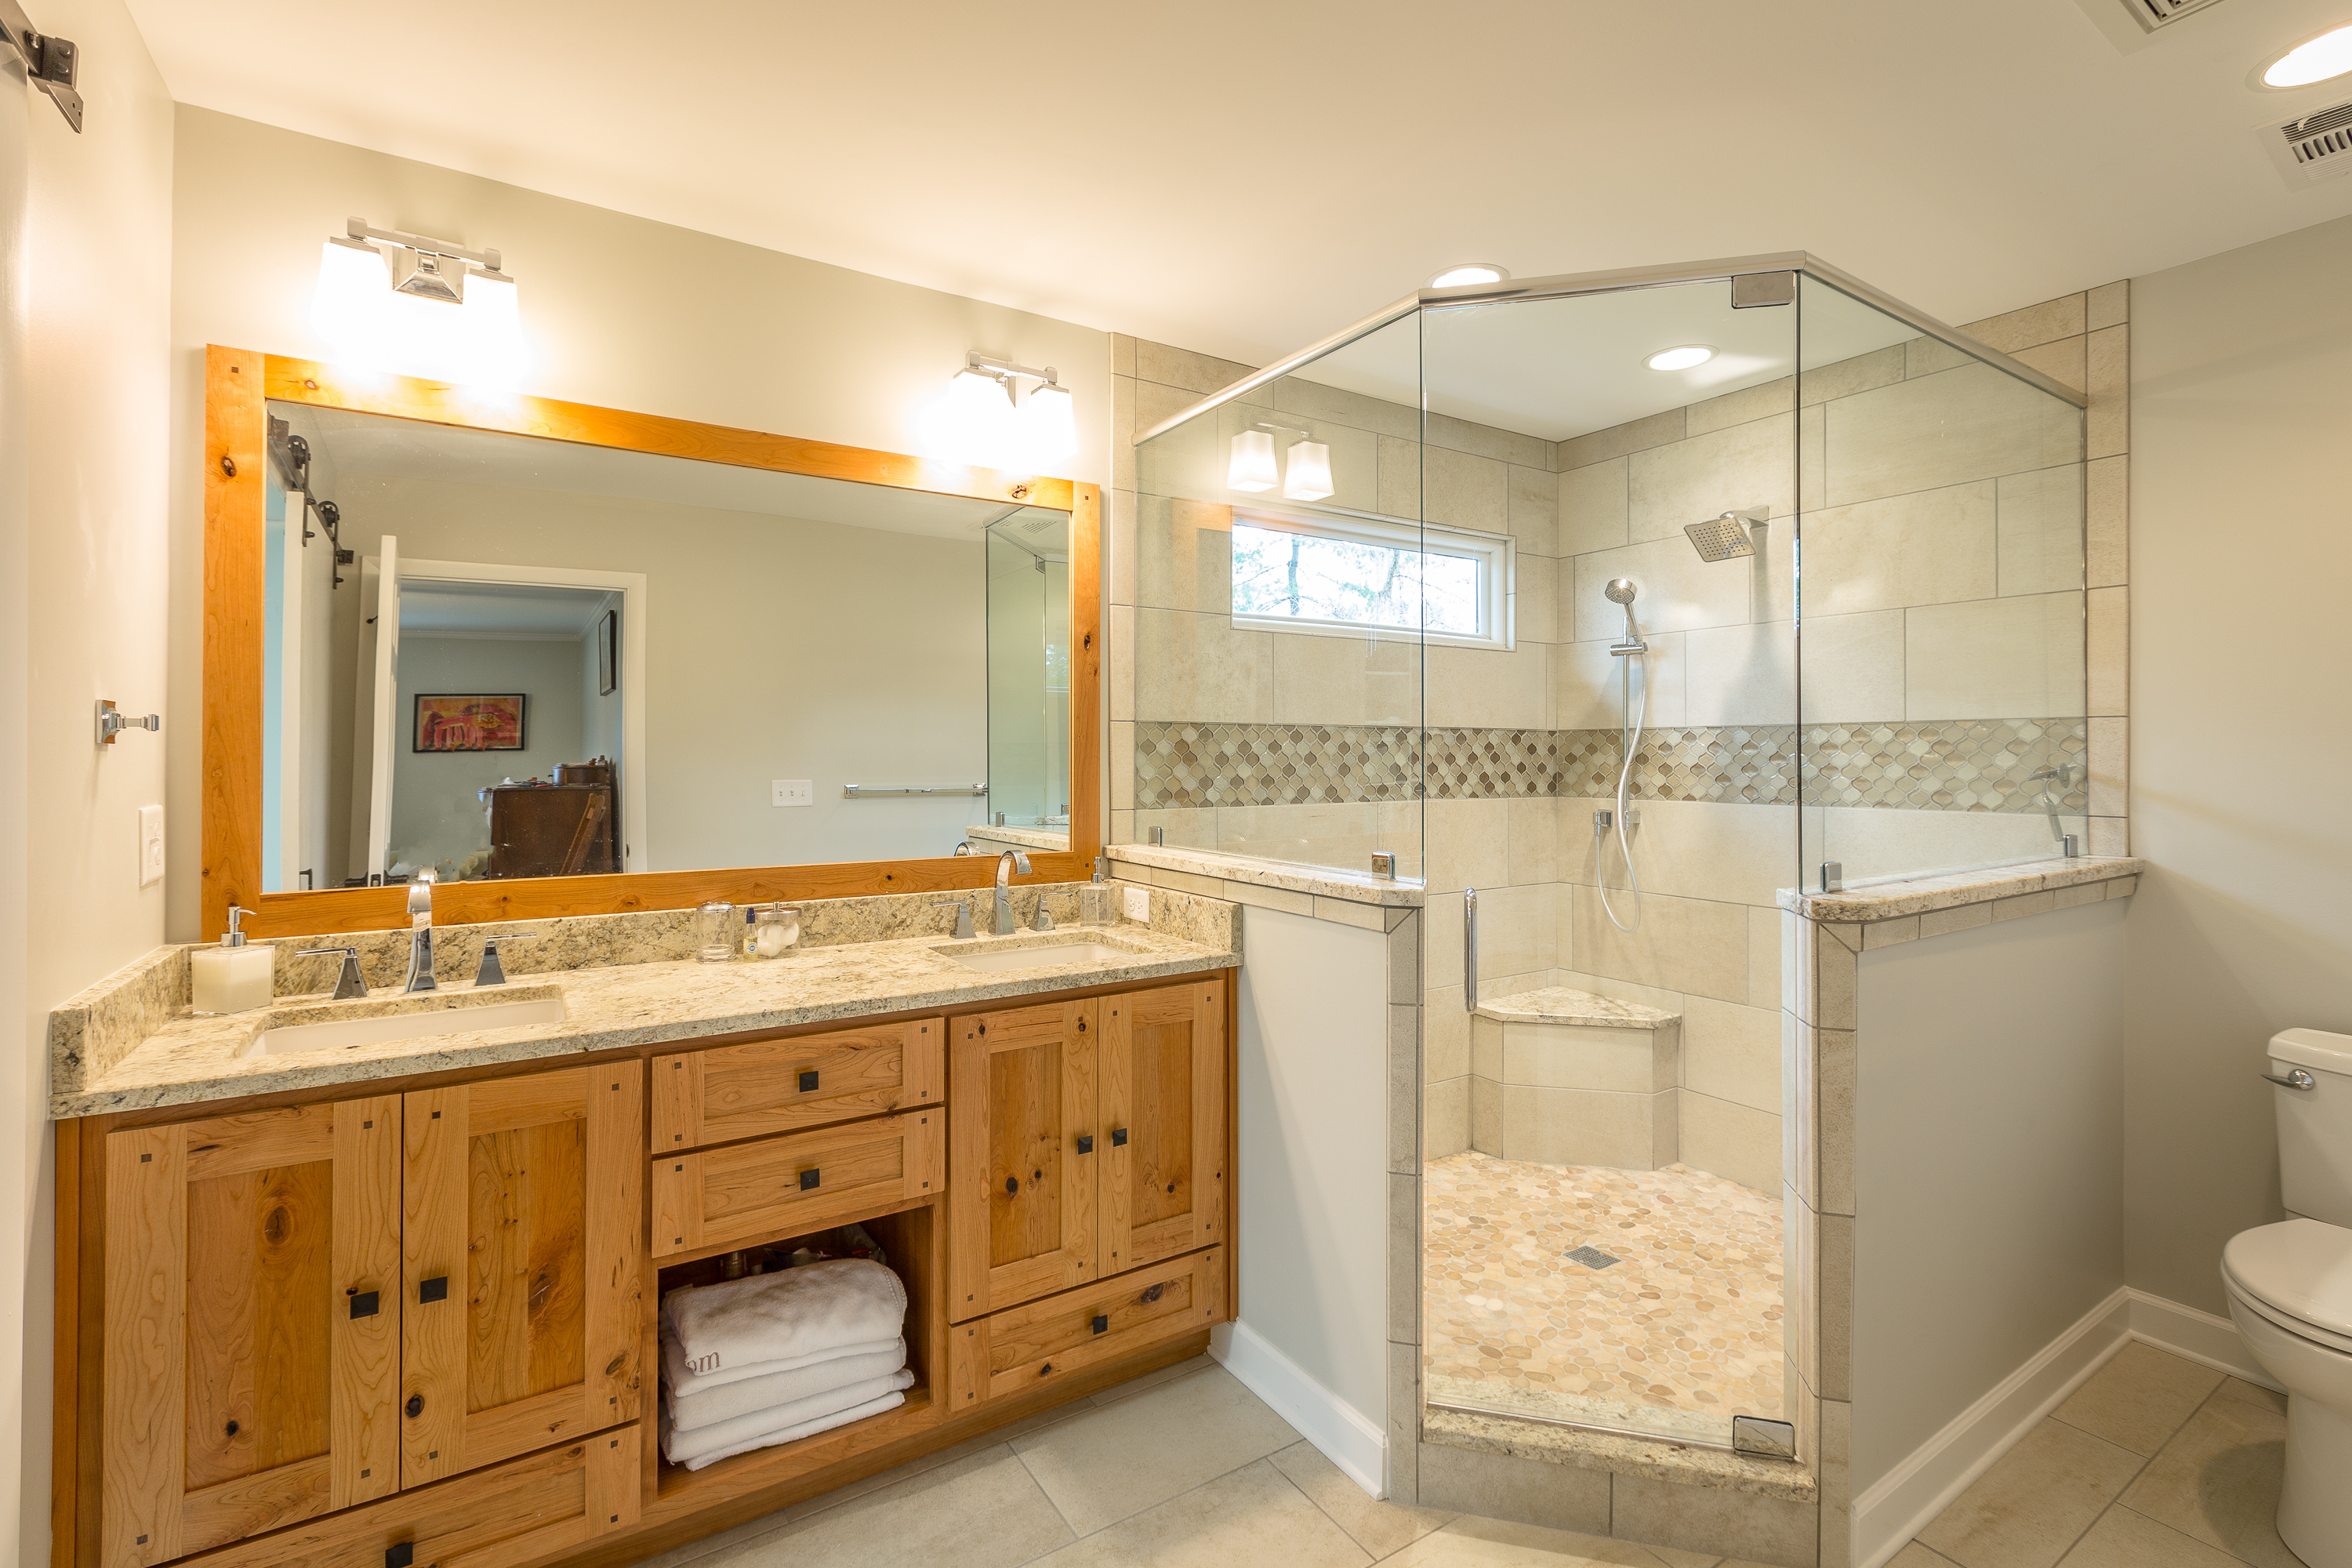 remodeled homes we examples bathroom img logo pros remodeling added are ve to here of and chattanooga tn bathrooms